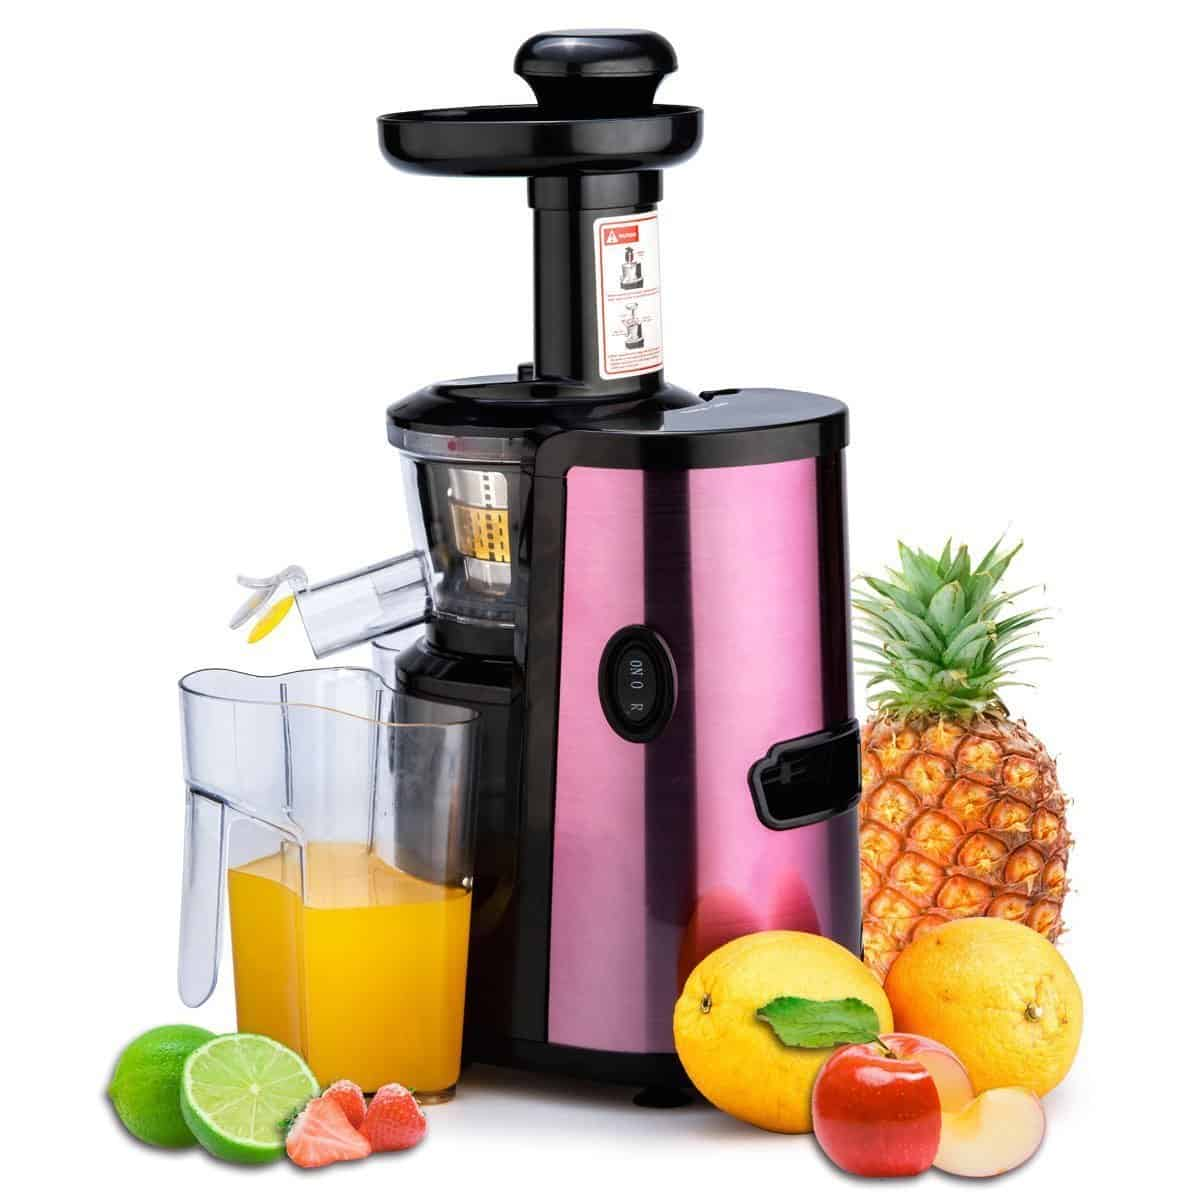 CUH 150W Electric Slow Fruit Vegetable Juicer Review